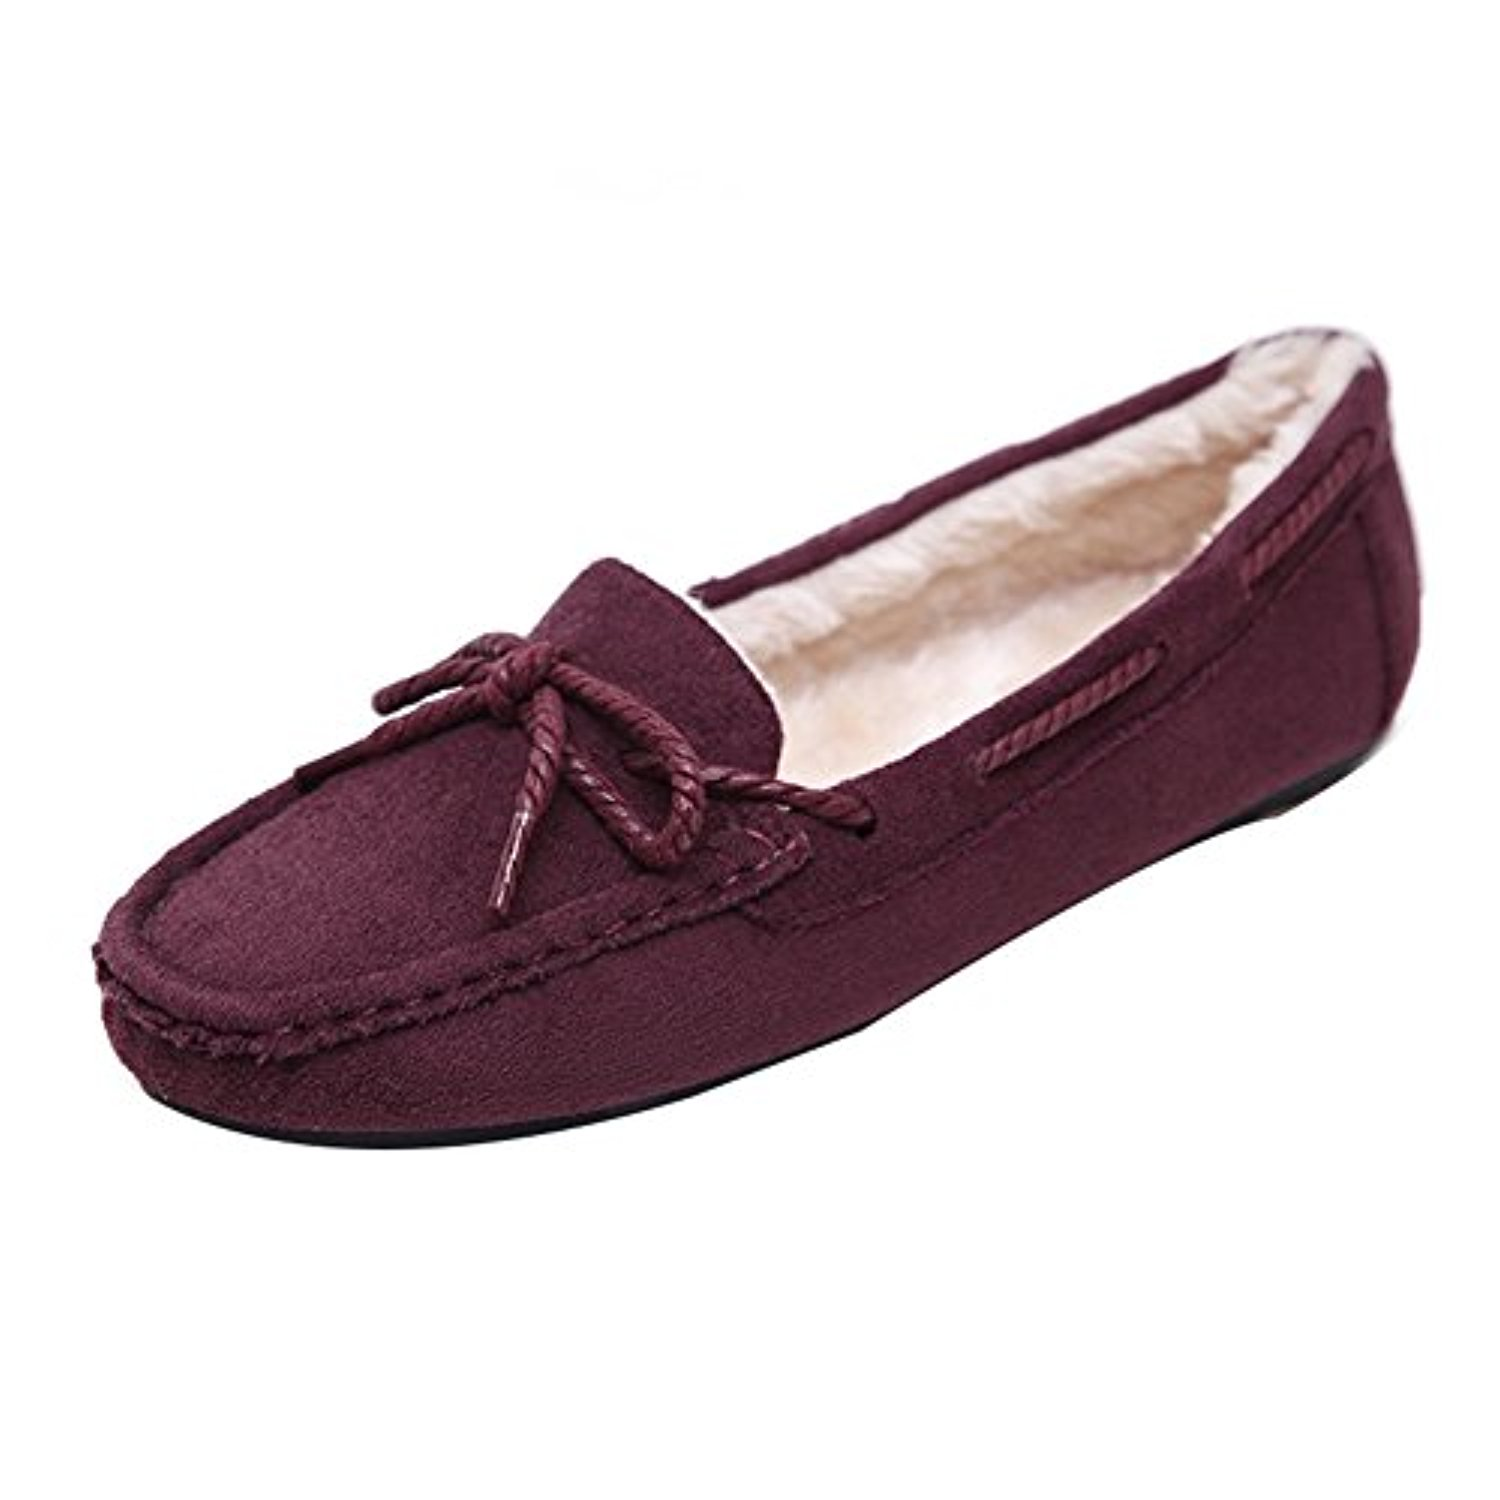 Youjia femmes cozy suede synth tique mocassins loafer for Chausson de piscine pour verrue